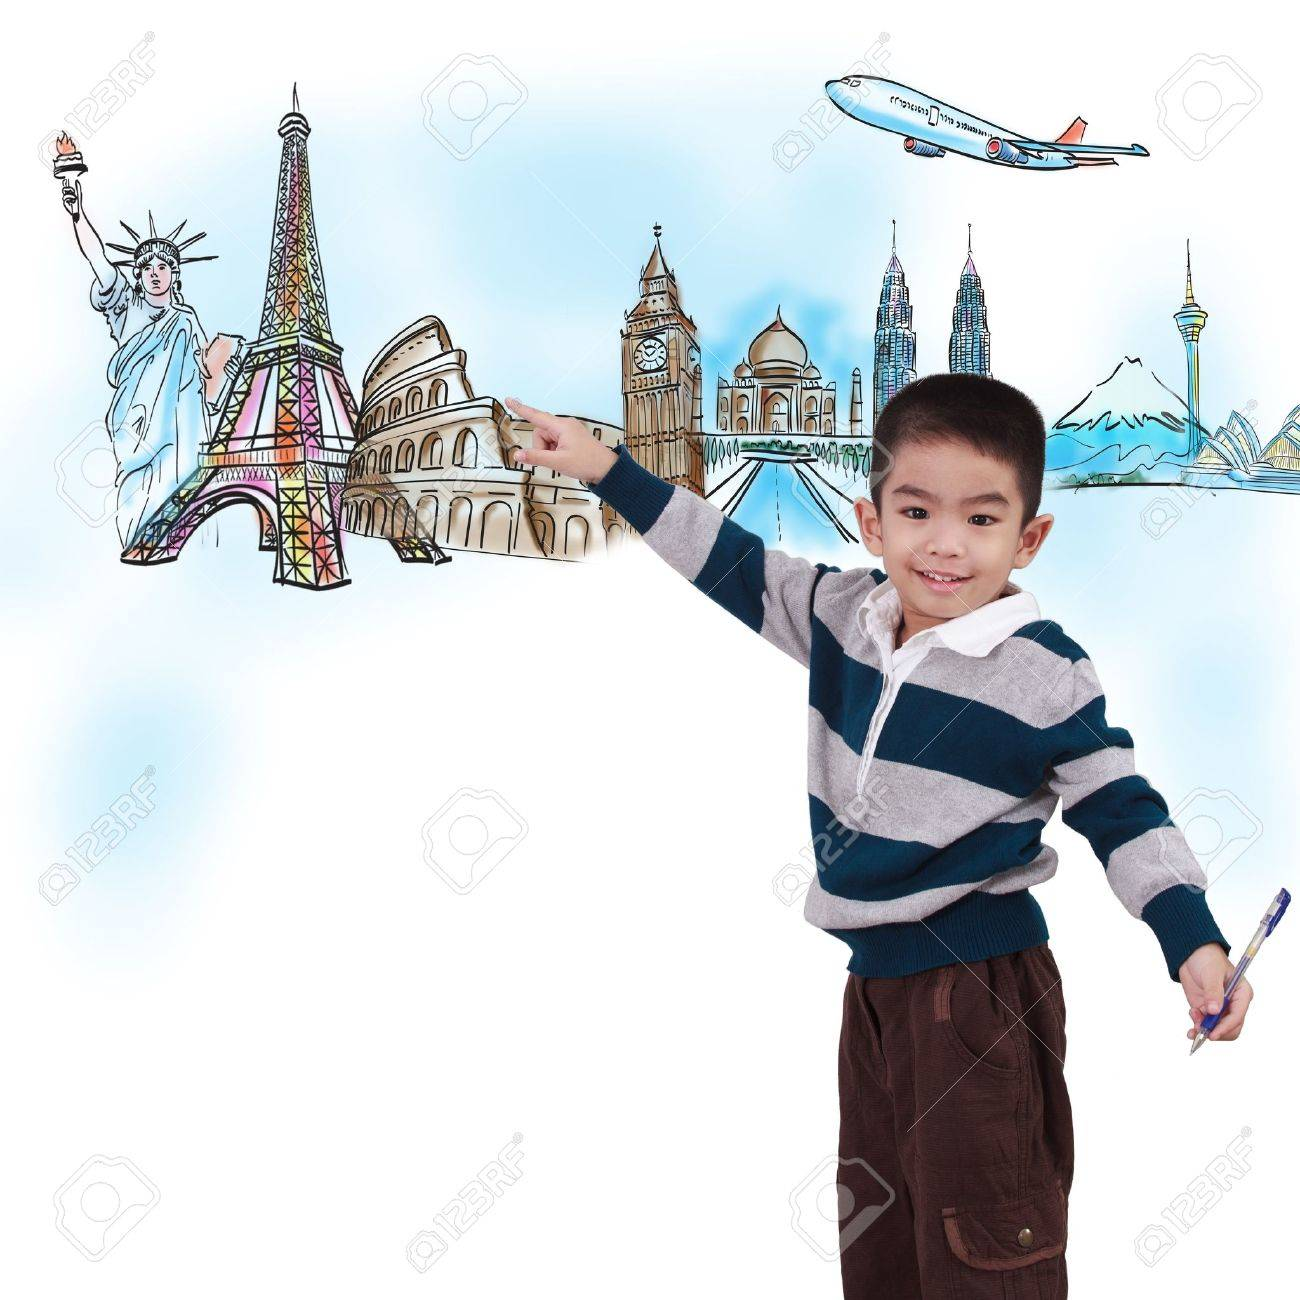 boy drawing the dream travel around the world in a whiteboard - 14689355